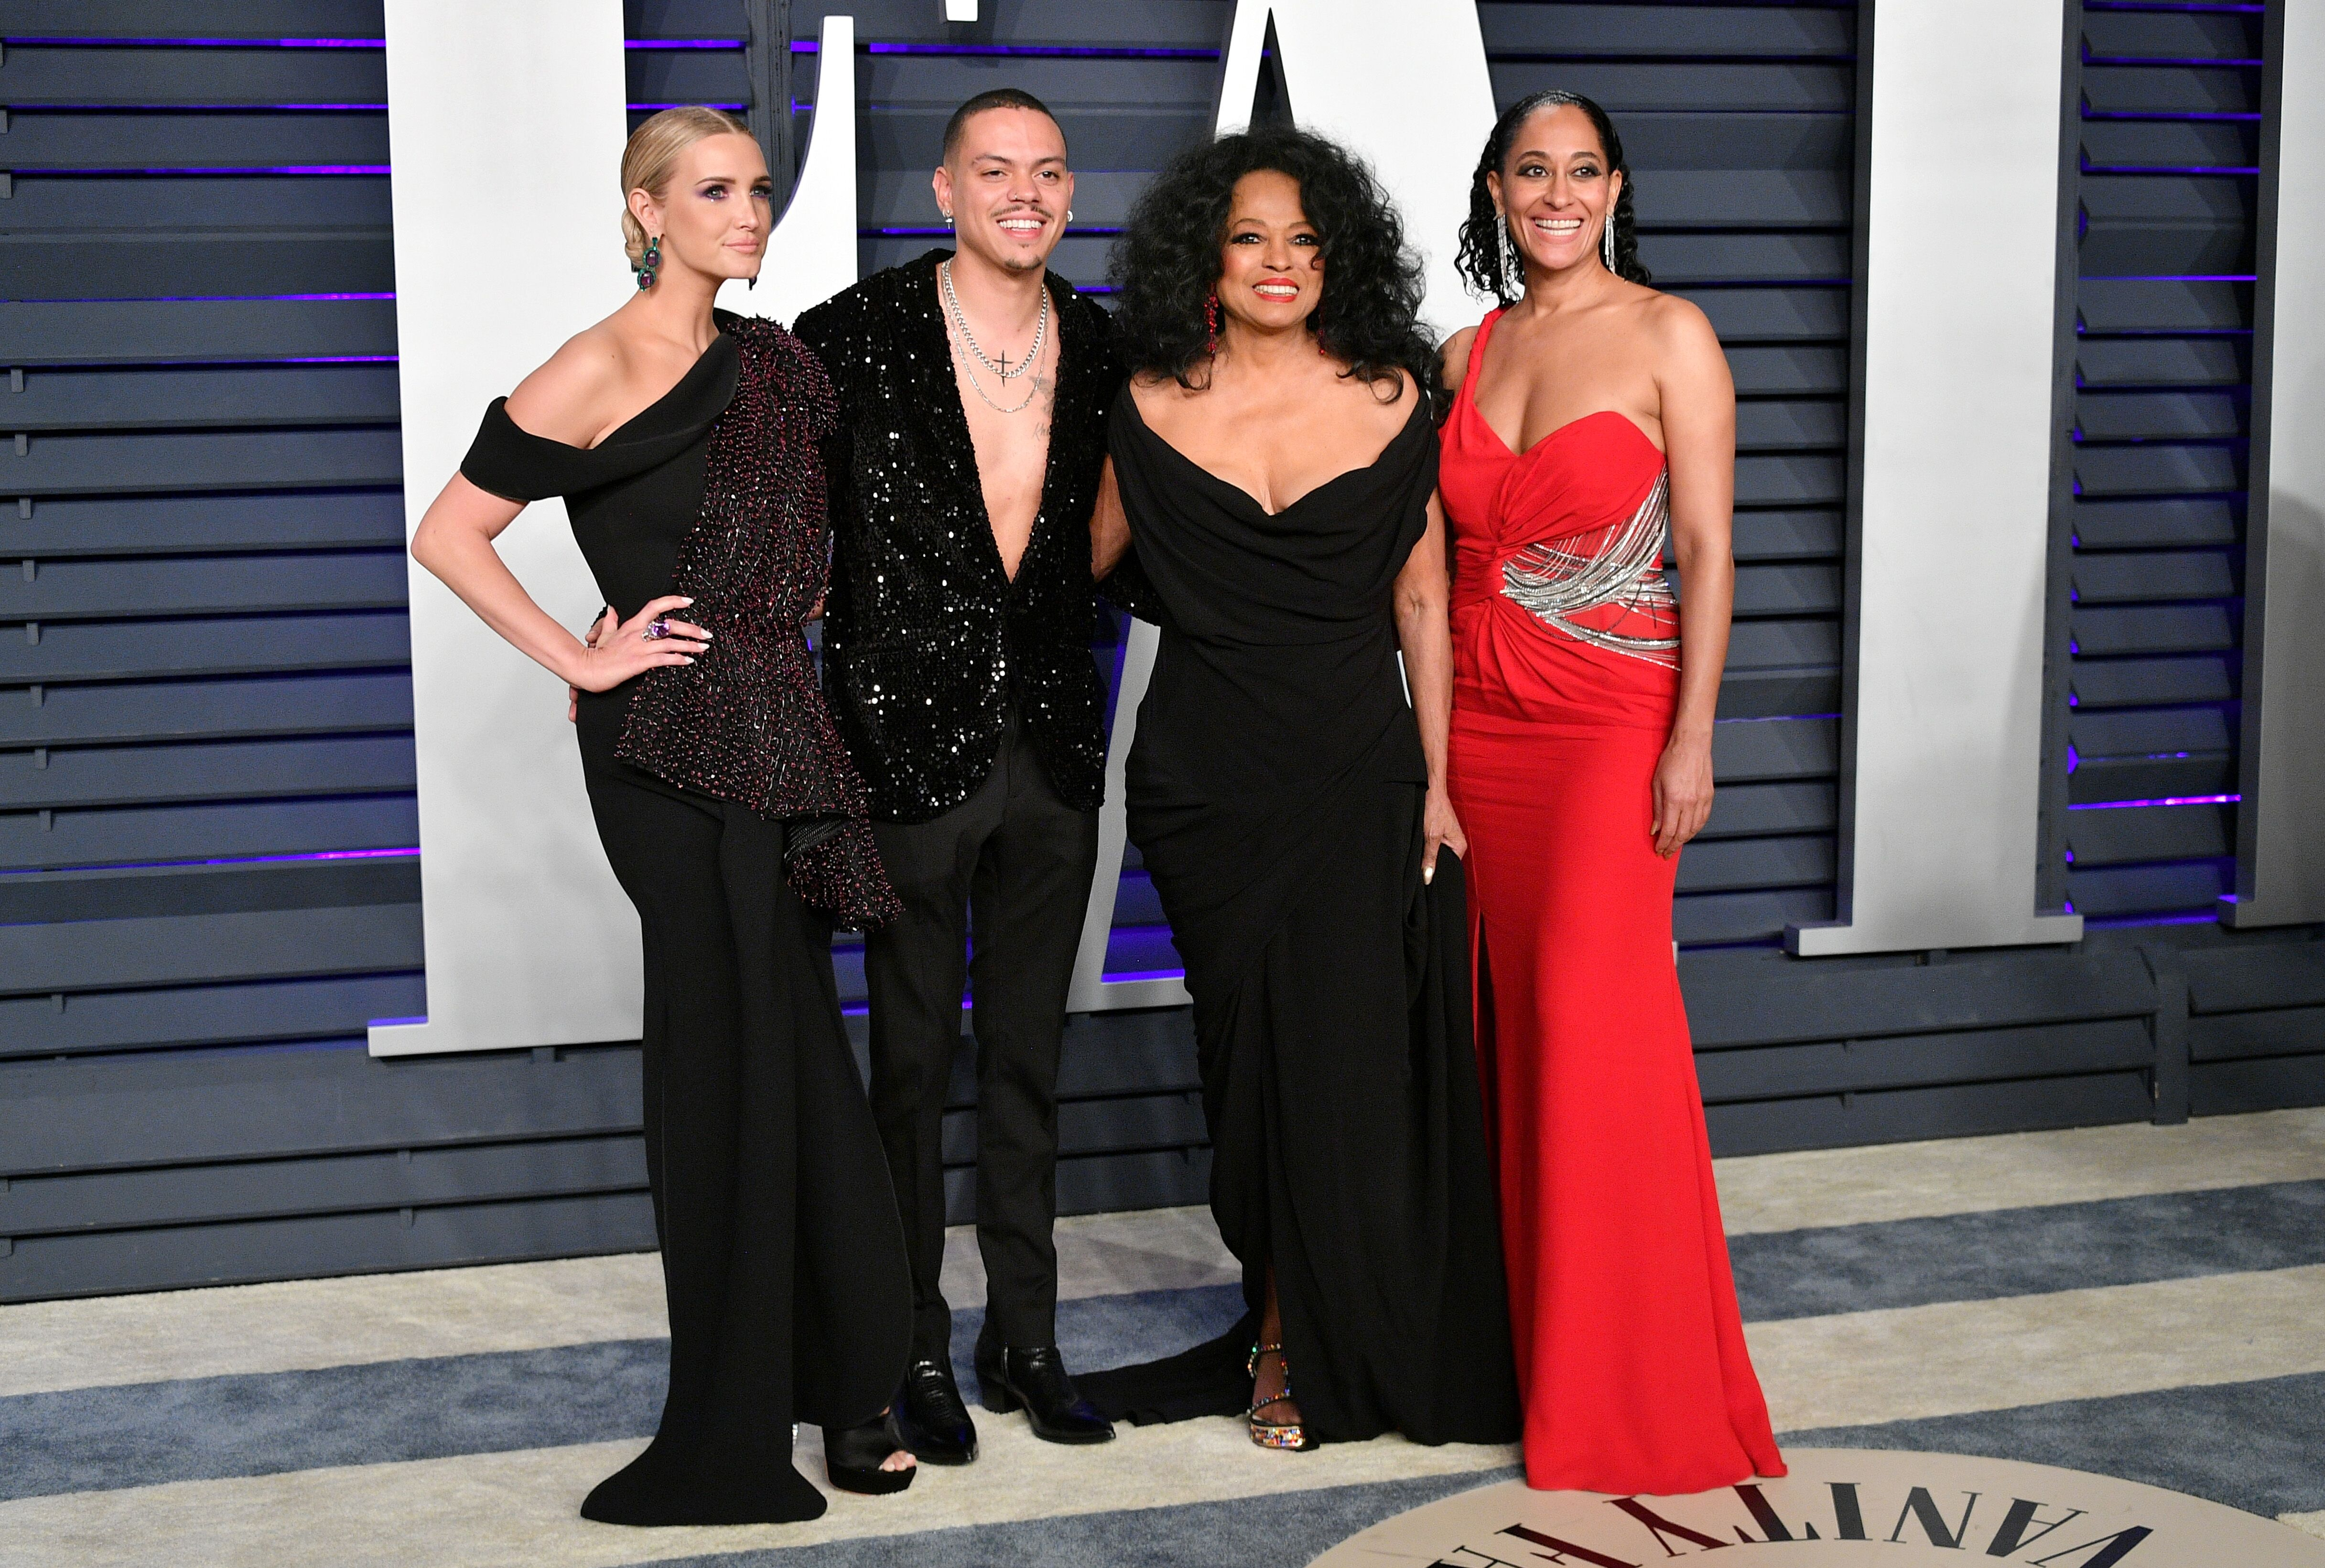 Diana Ross and her children attend a Vanity Fair event   Source: Getty Images/GlobalImagesUkraine